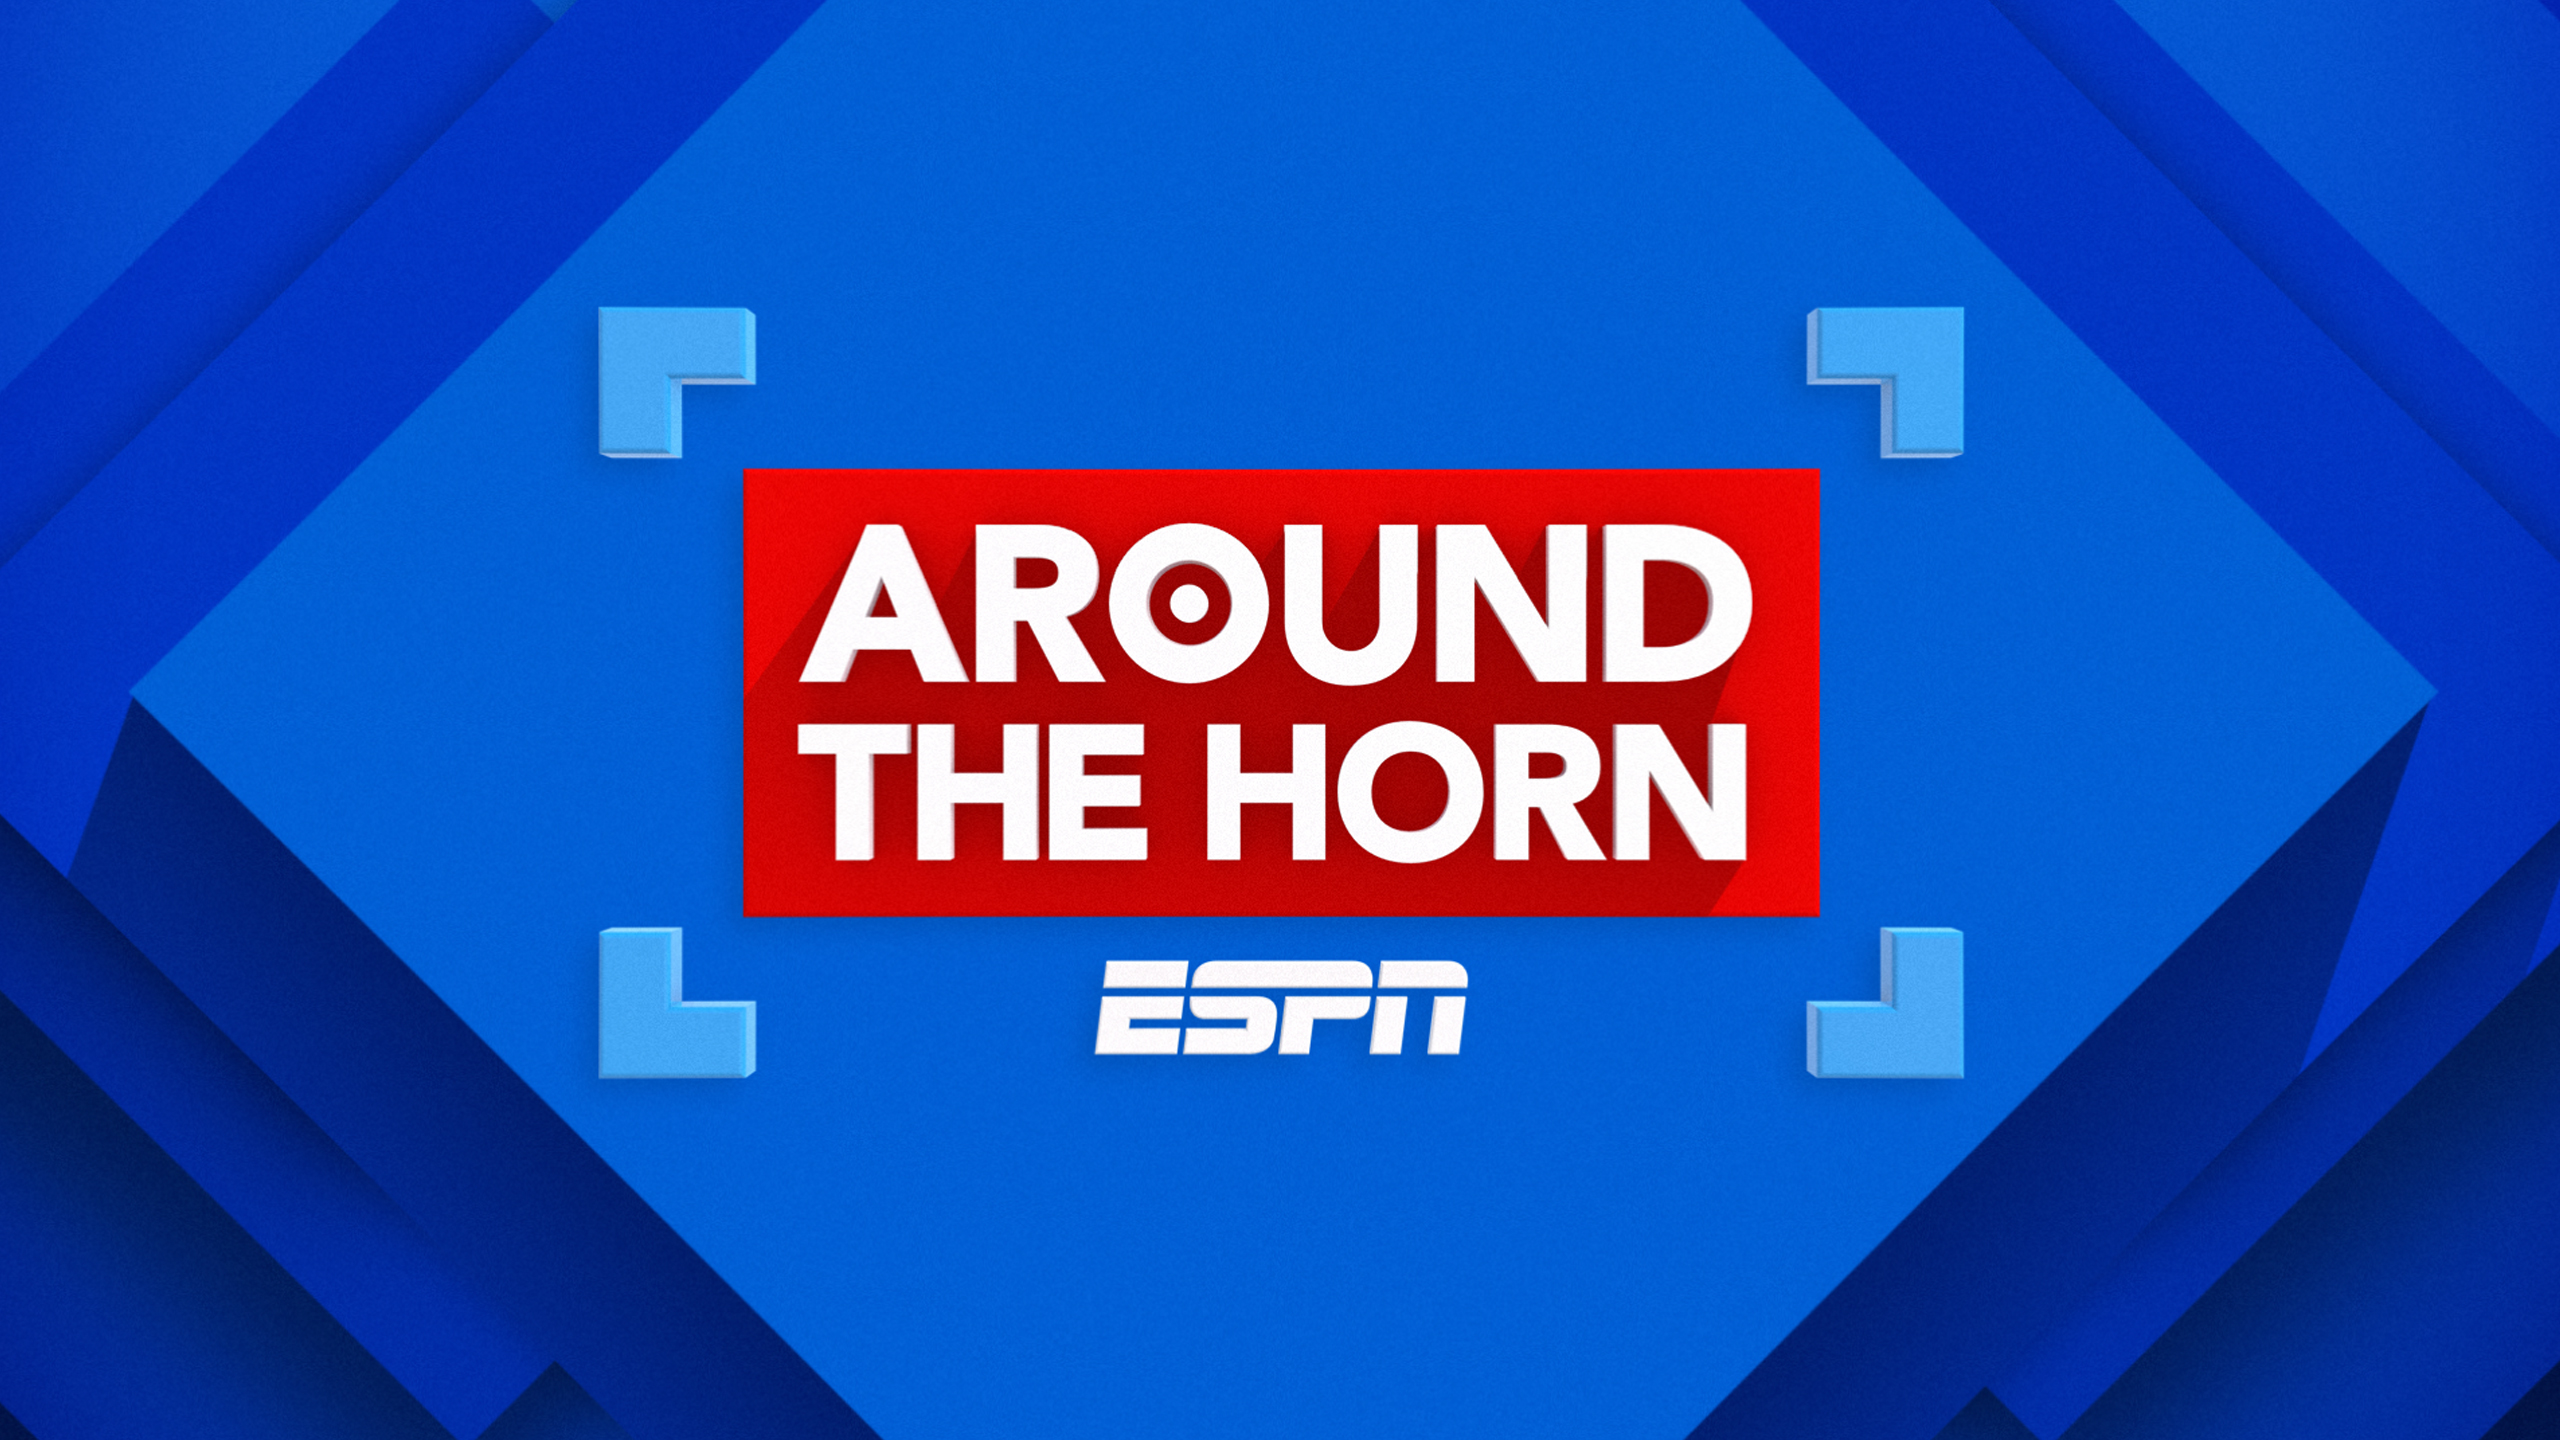 Fri, 11/16 - Around The Horn